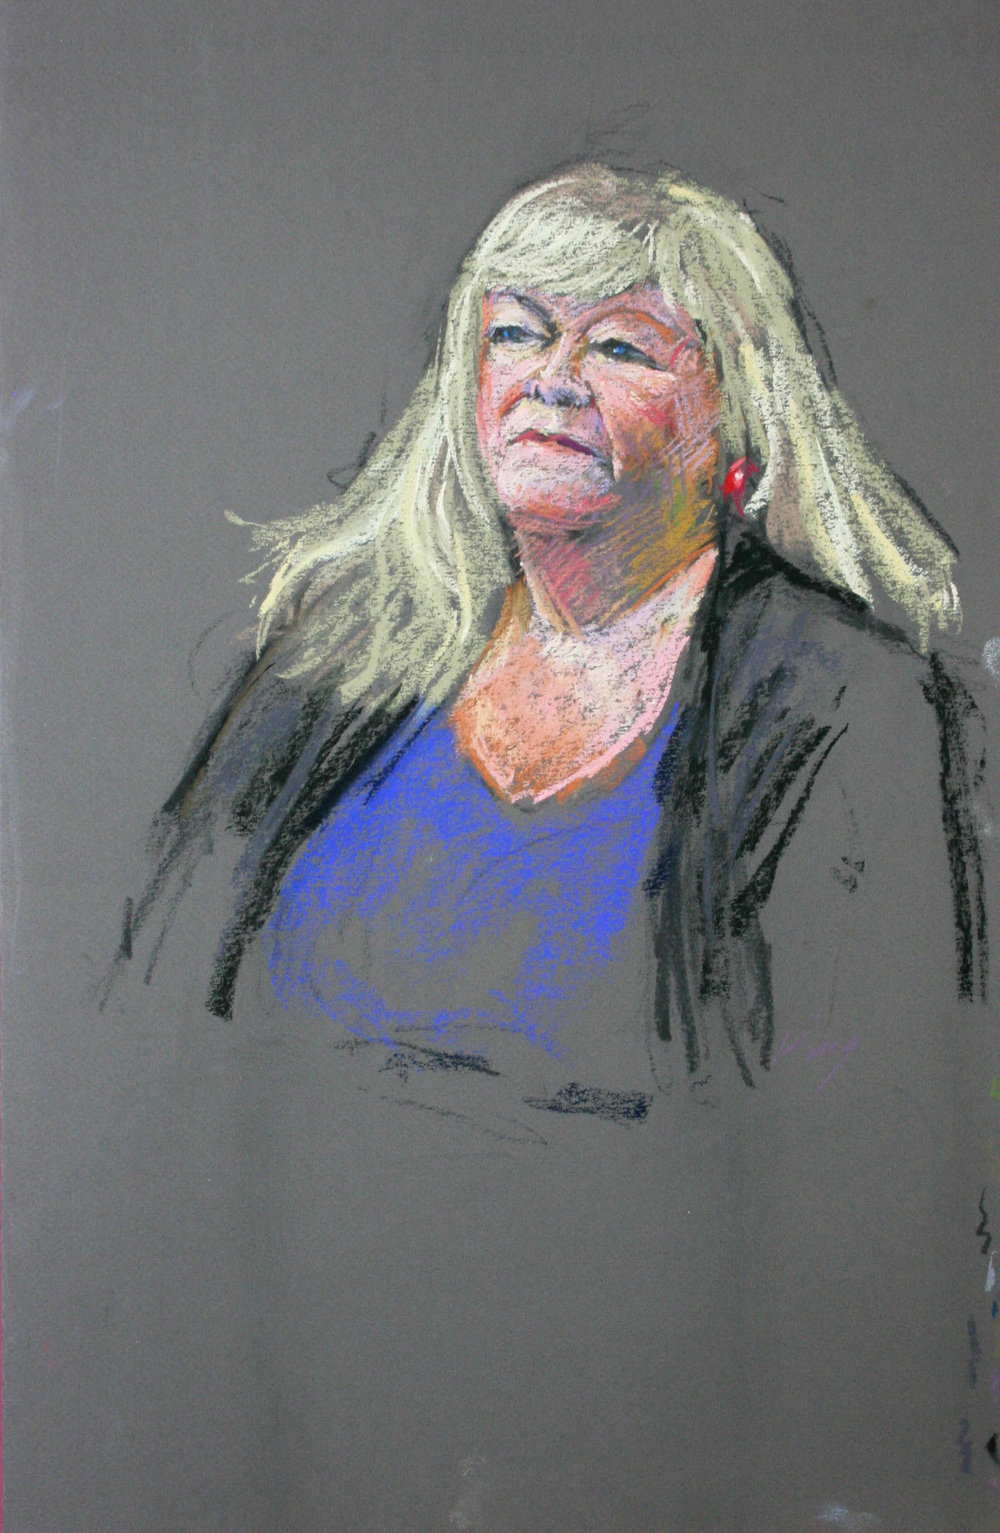 David King did this pastel drawing.